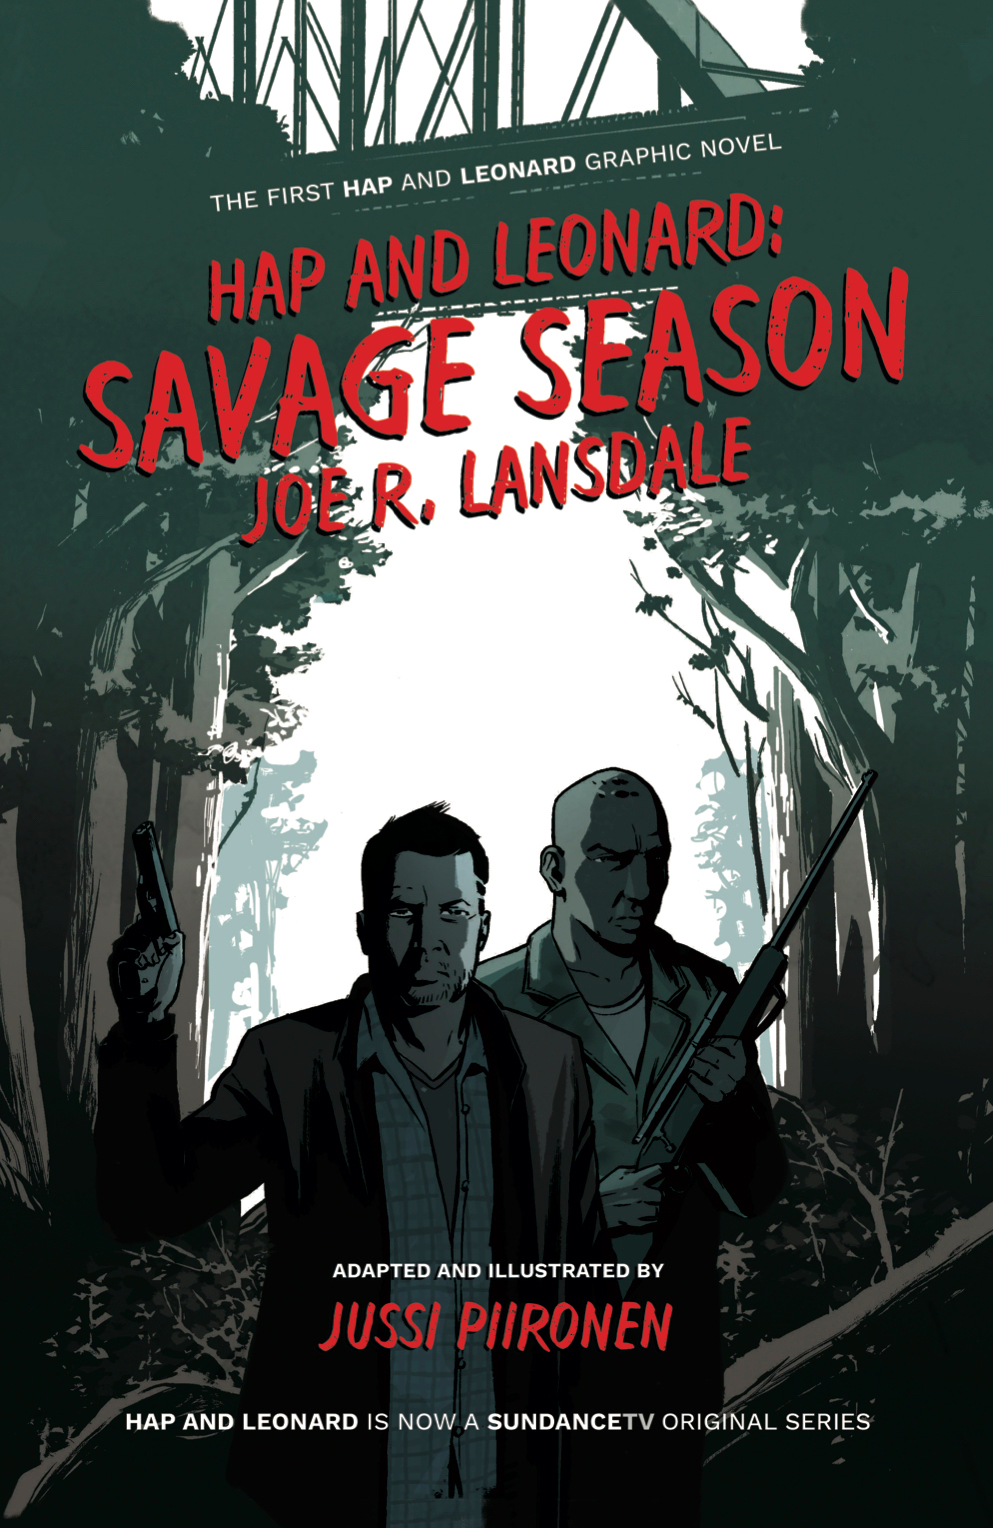 Hap and Leonard: Savage Season by Joe R. Lansdale~MP3 CD~Unabridged